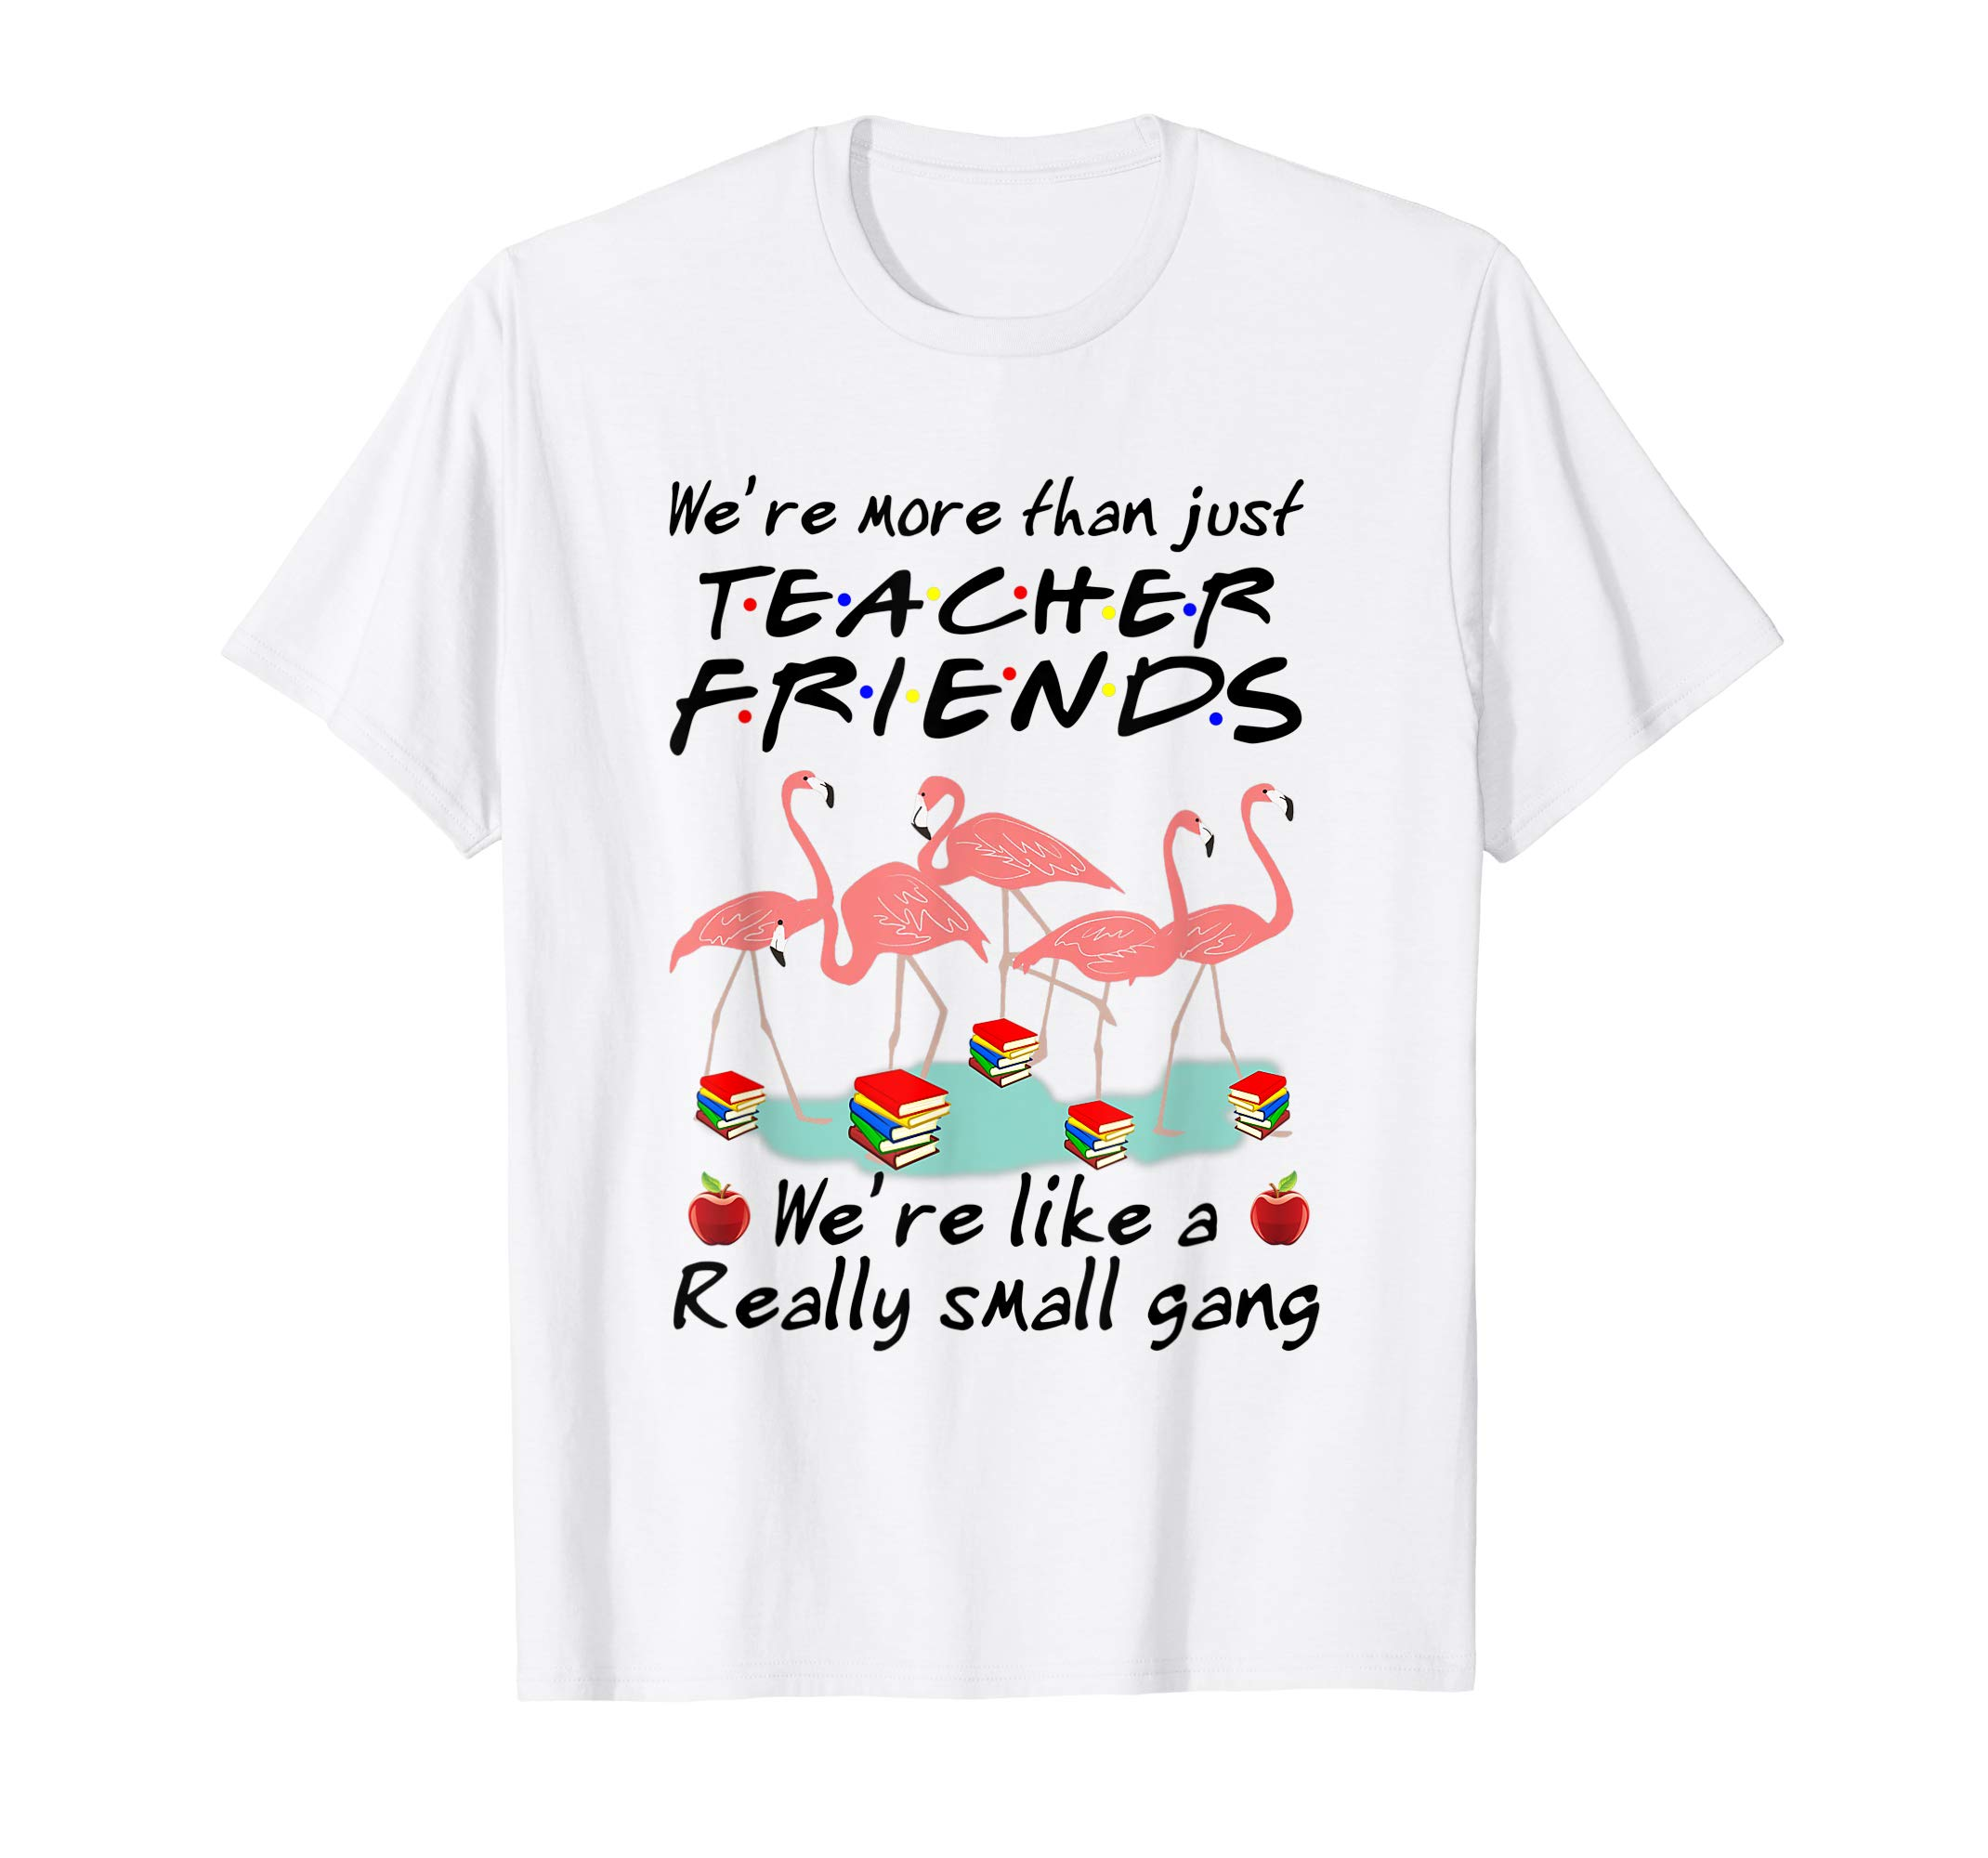 b57e016f5af9e4 Flamingo We're More Than Just Teacher Friends Shirt - Reviewshirts ...